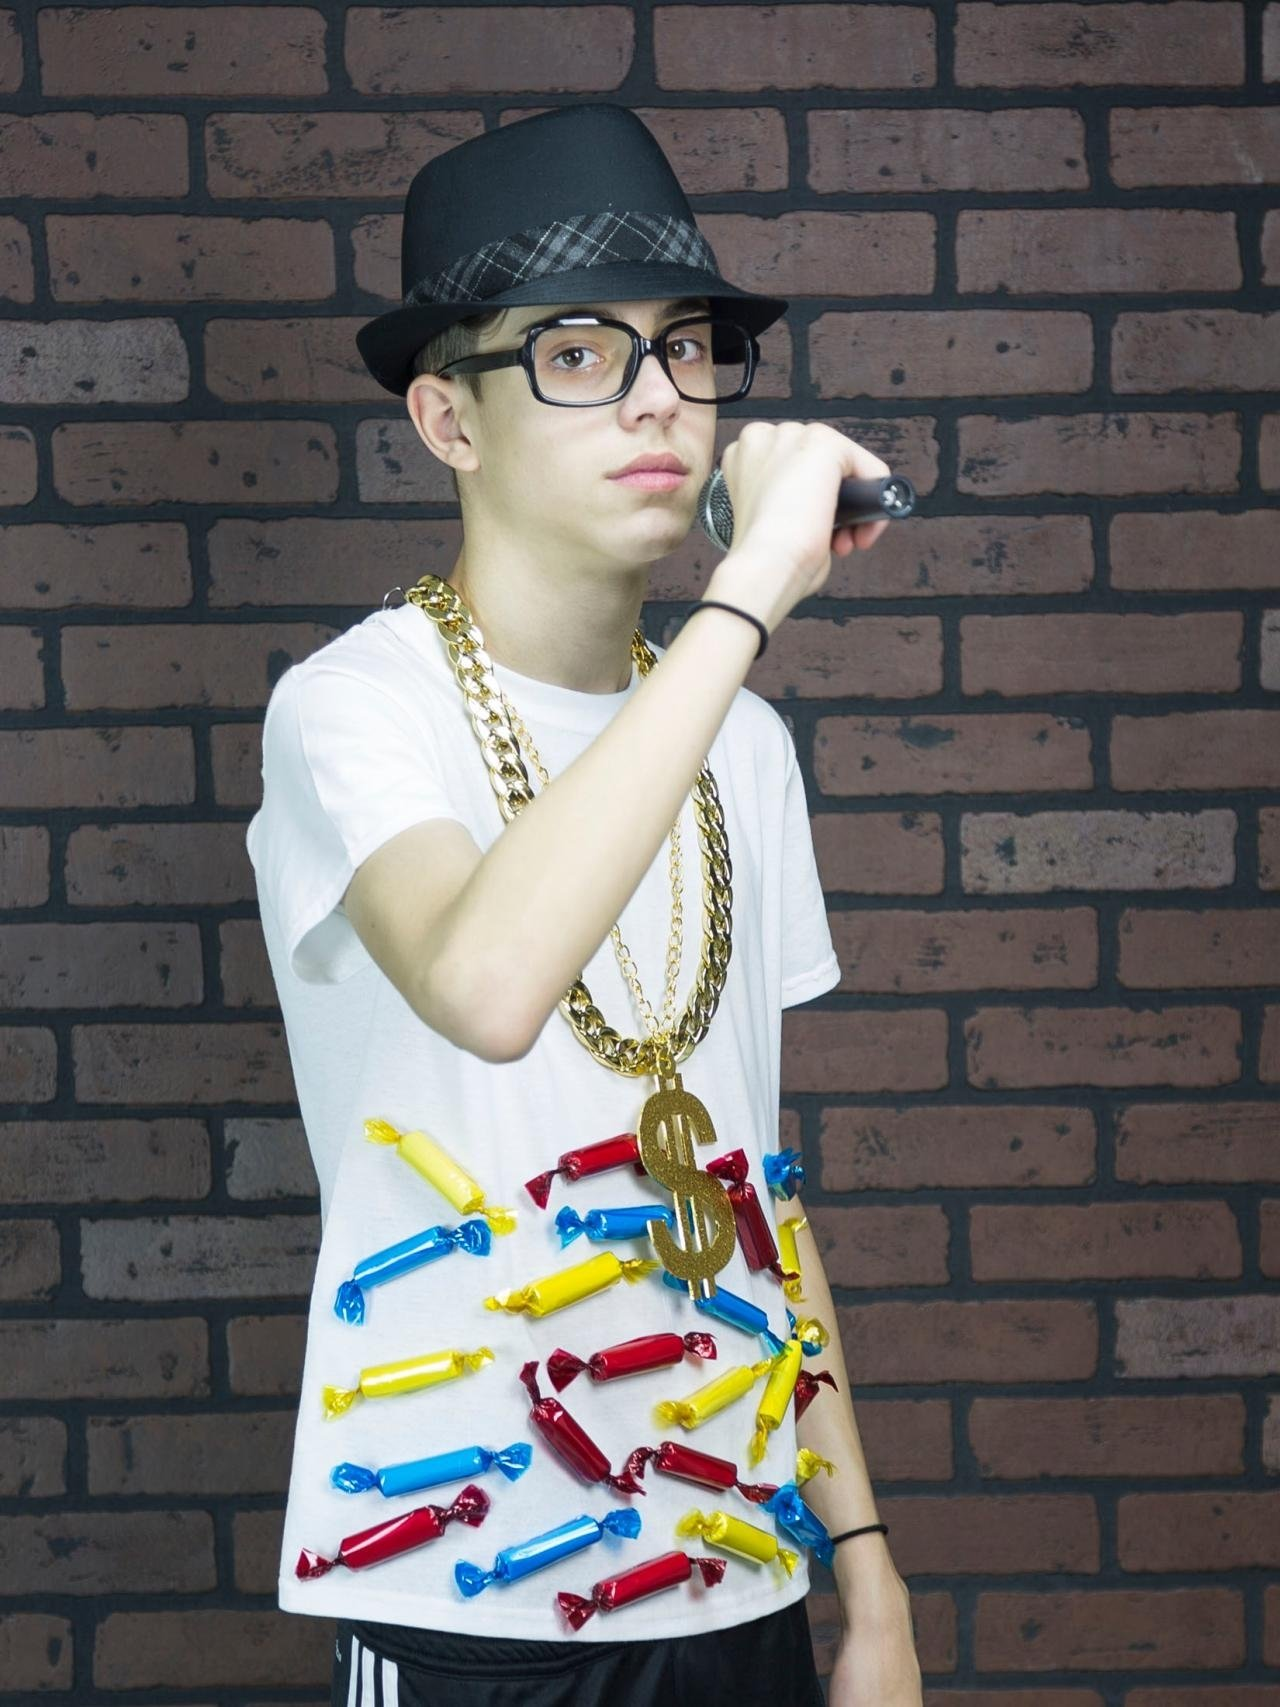 10 Awesome Boys Homemade Halloween Costume Ideas easy budget halloween costume hip hop candy rapper easy budget 3